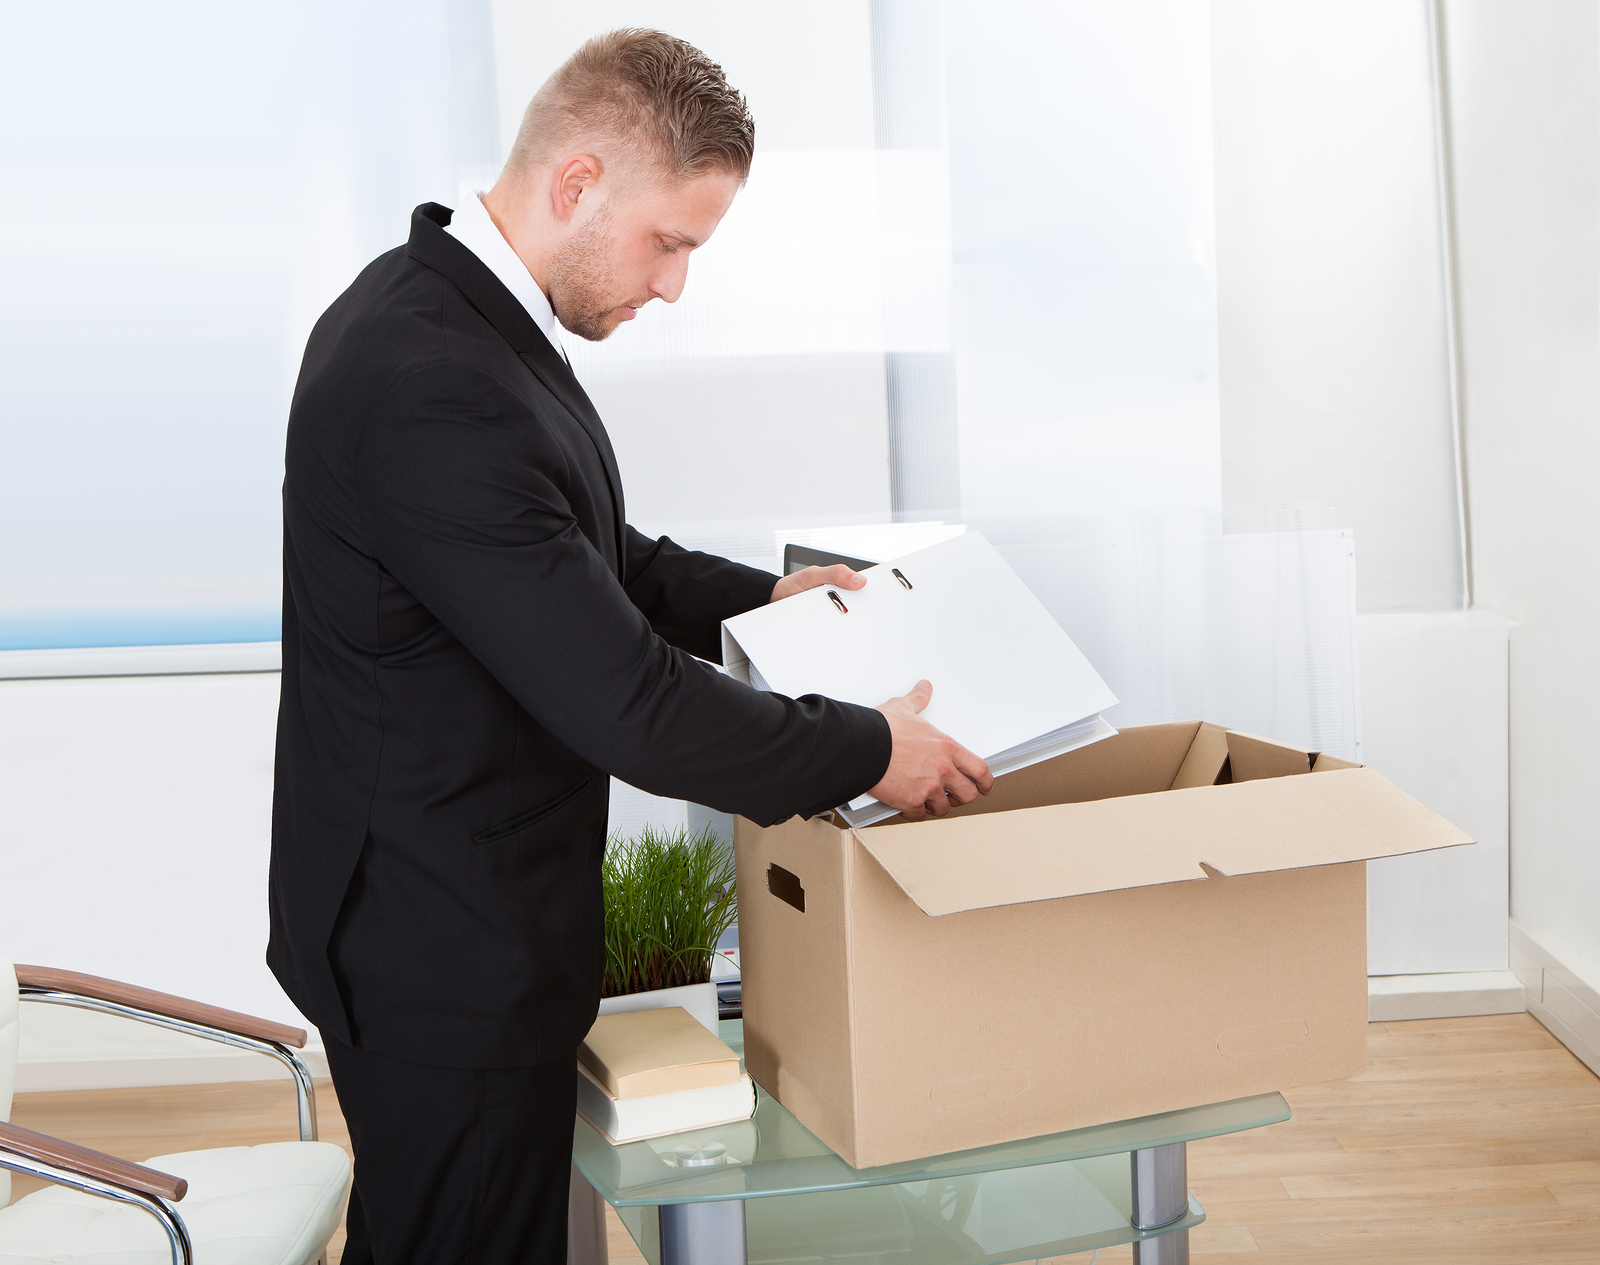 Person gathering personal belongings after being made redundant